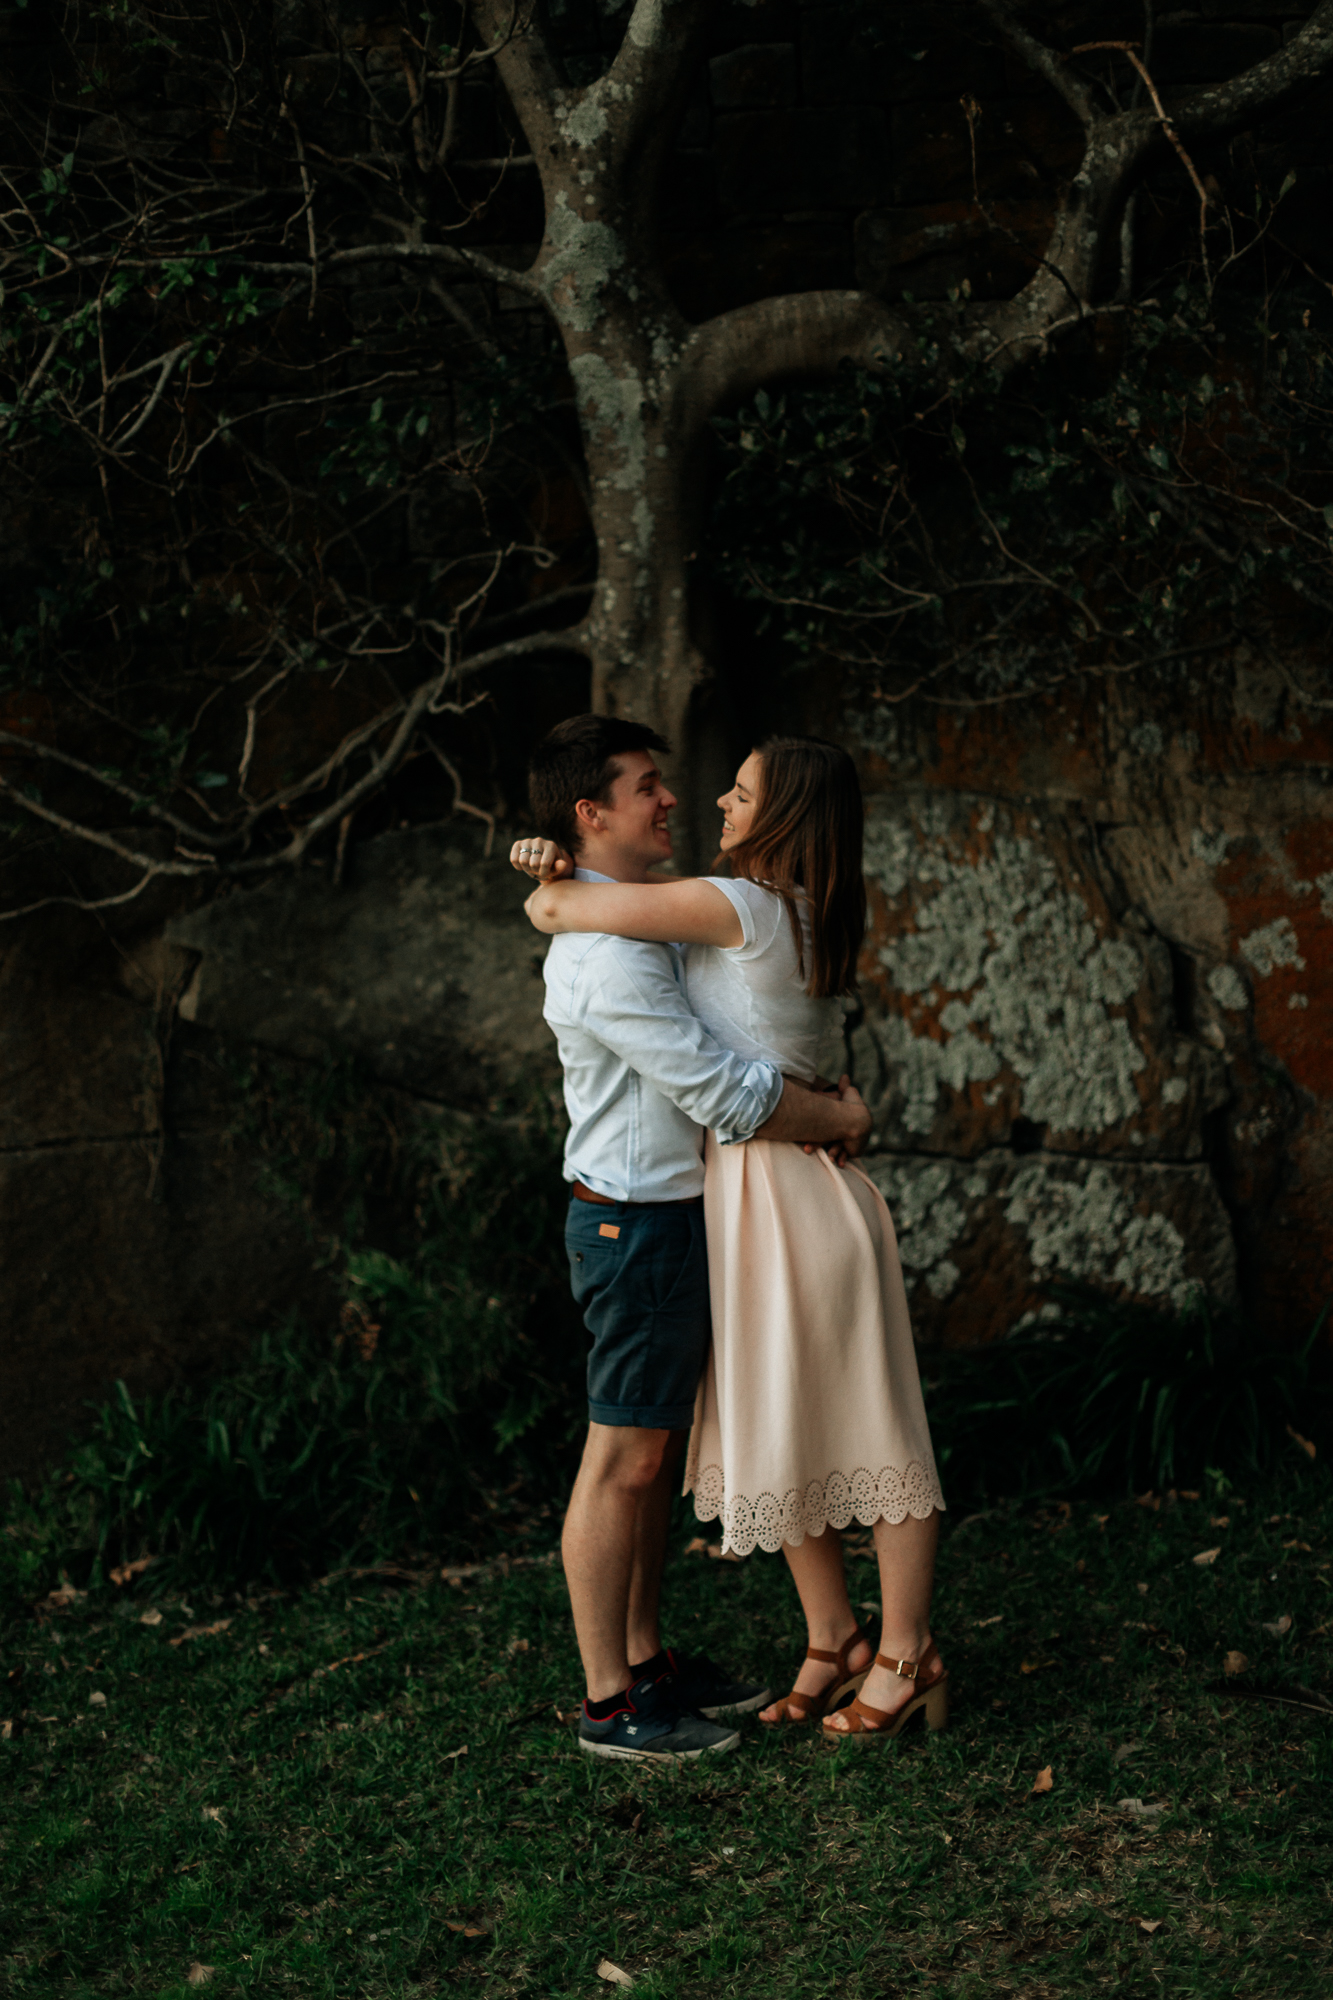 Amanzi and Steven_Engagement_Sydney_Holly Medway Photography-58.JPG